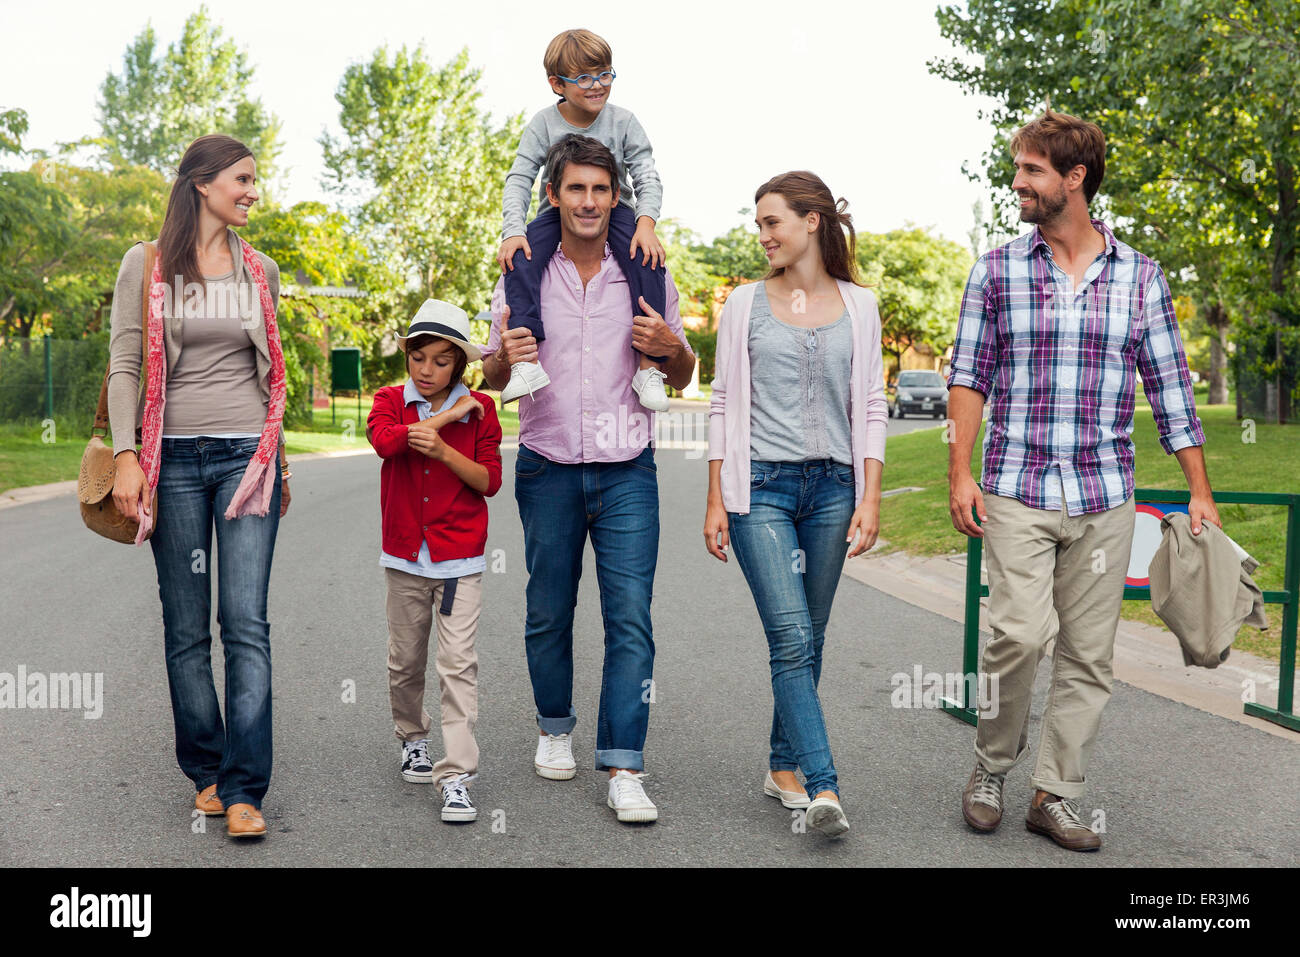 Family walking together in street - Stock Image